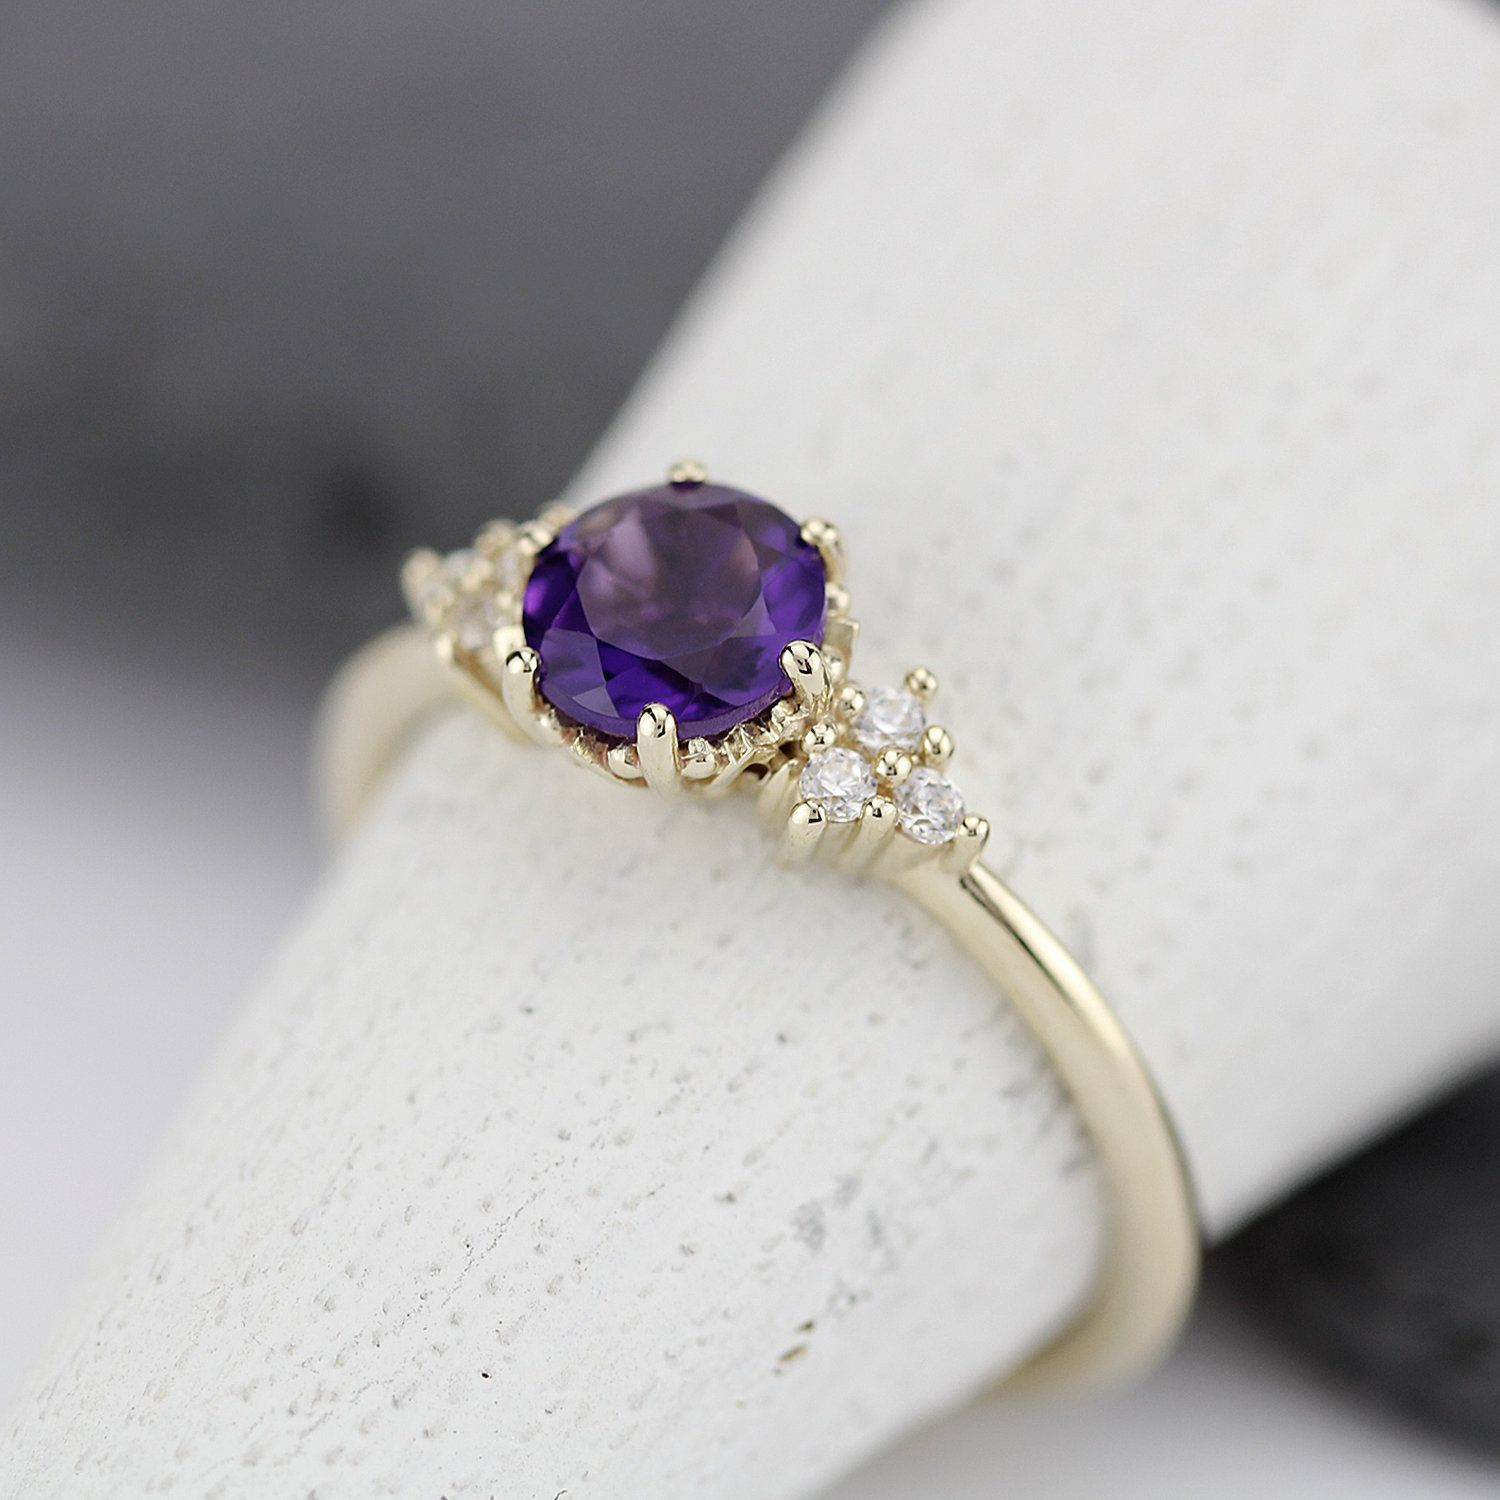 Amethyst Engagement Ring Delicate Diamond Ring Delicate Ring Minimalist Engagement Ring Engagement Ring Diamonds Diamond Ring Amethyst Ring Engagement Purple Engagement Rings Minimalist Engagement Ring